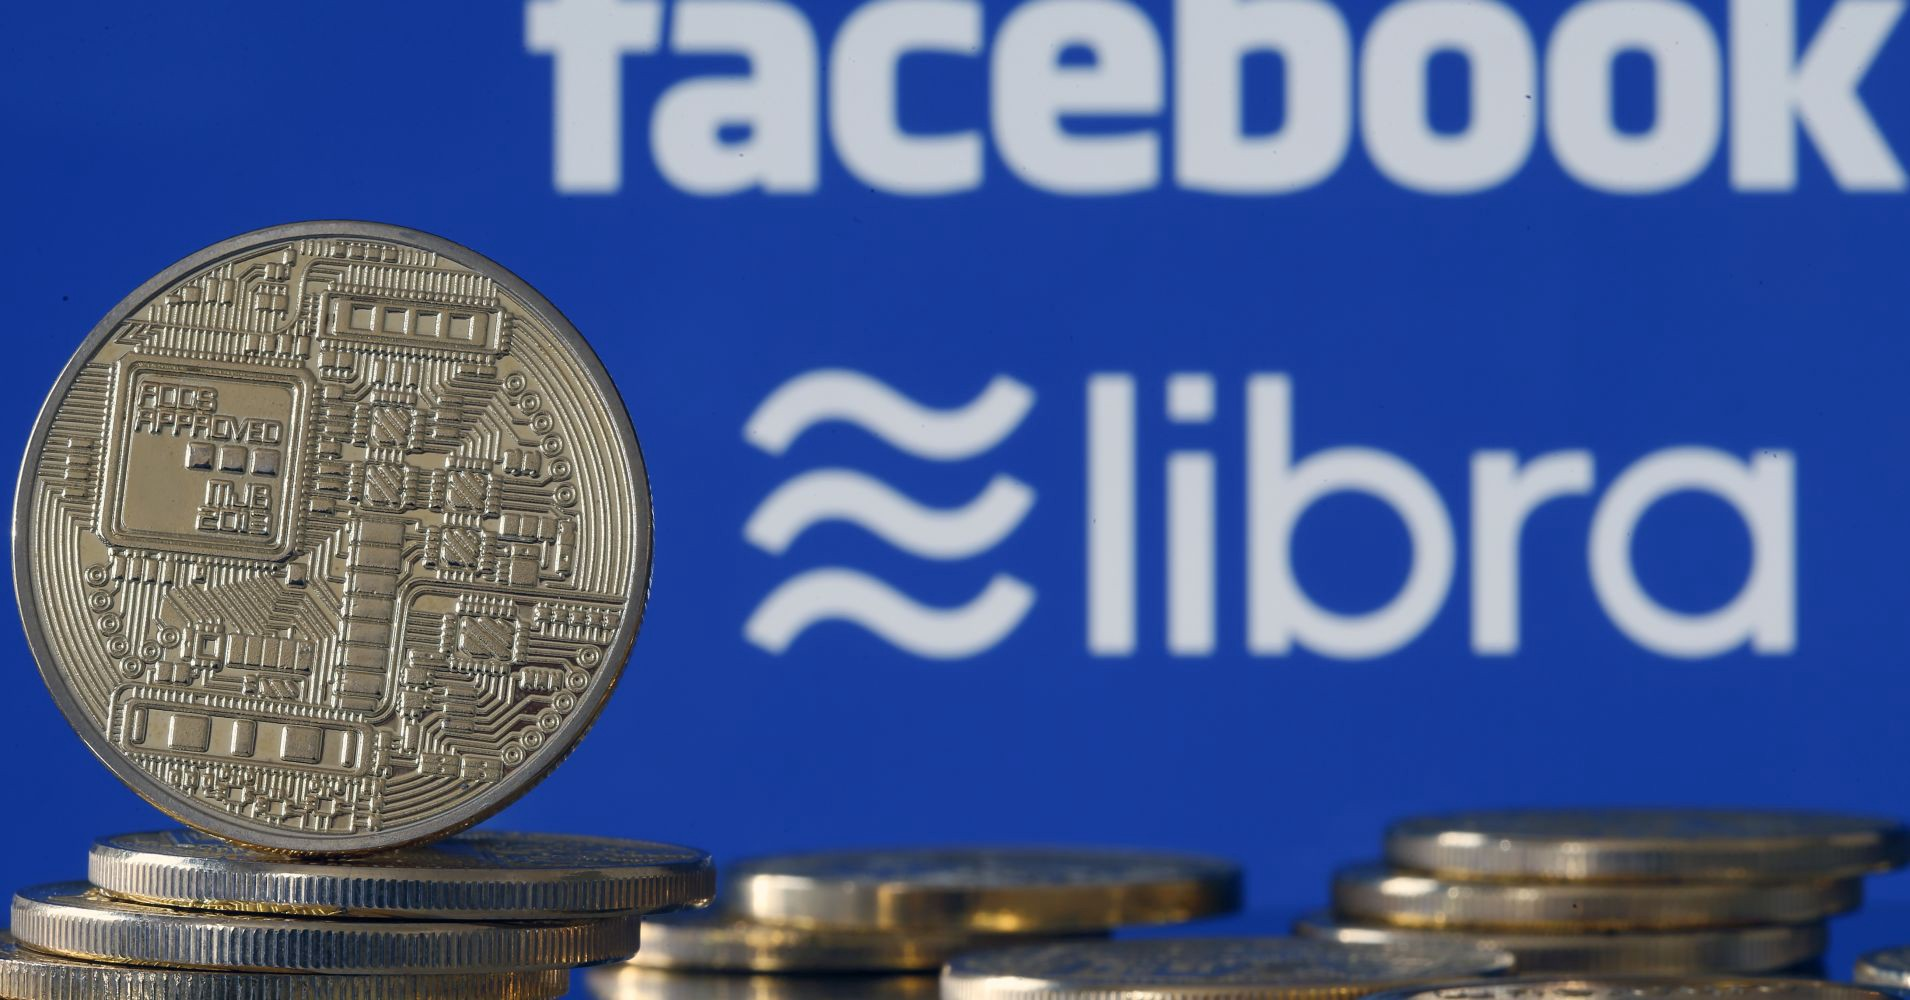 Facebook Executives To Meet Central Bankers To Throw Light On Libra